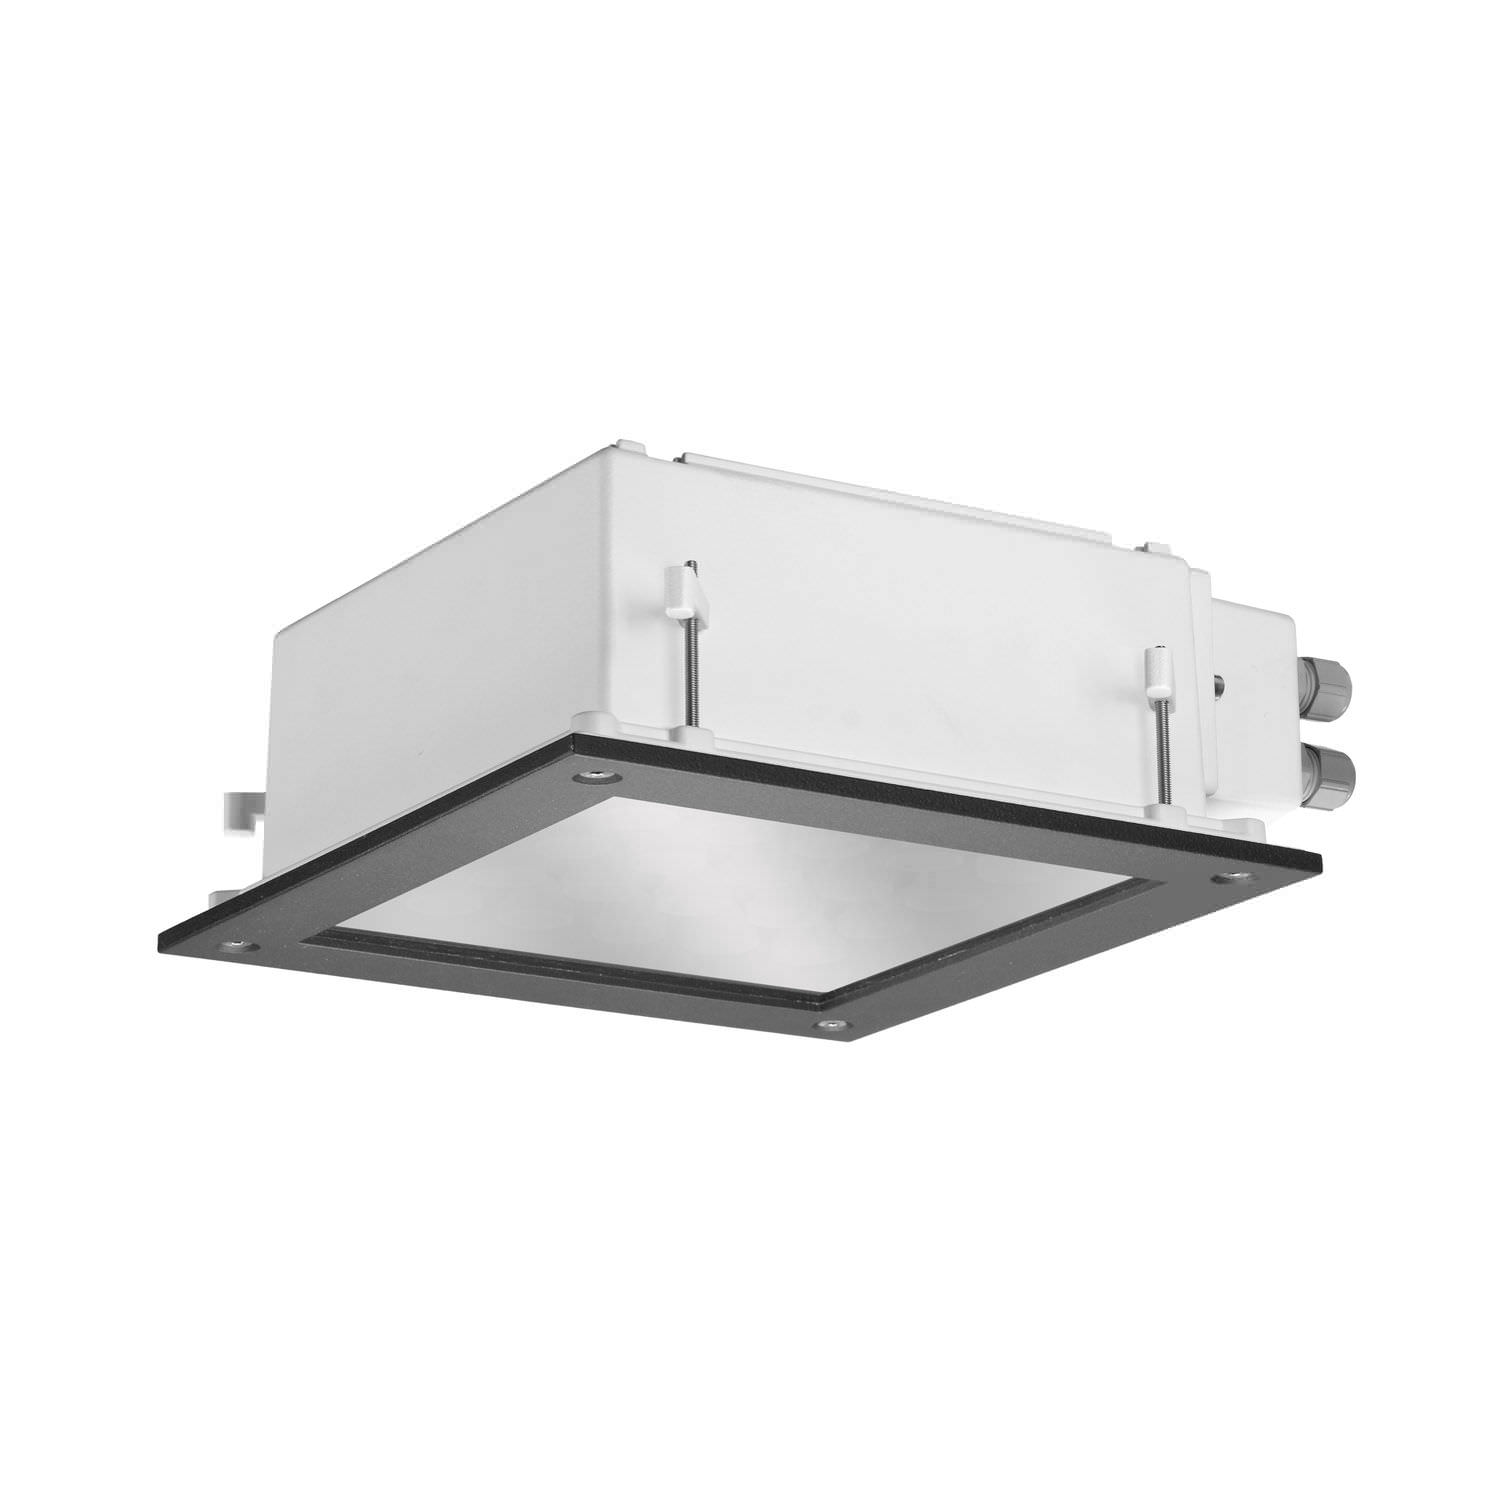 Recessed downlight for outdoor use hid compact fluorescent recessed downlight for outdoor use hid compact fluorescent ara arubaitofo Image collections